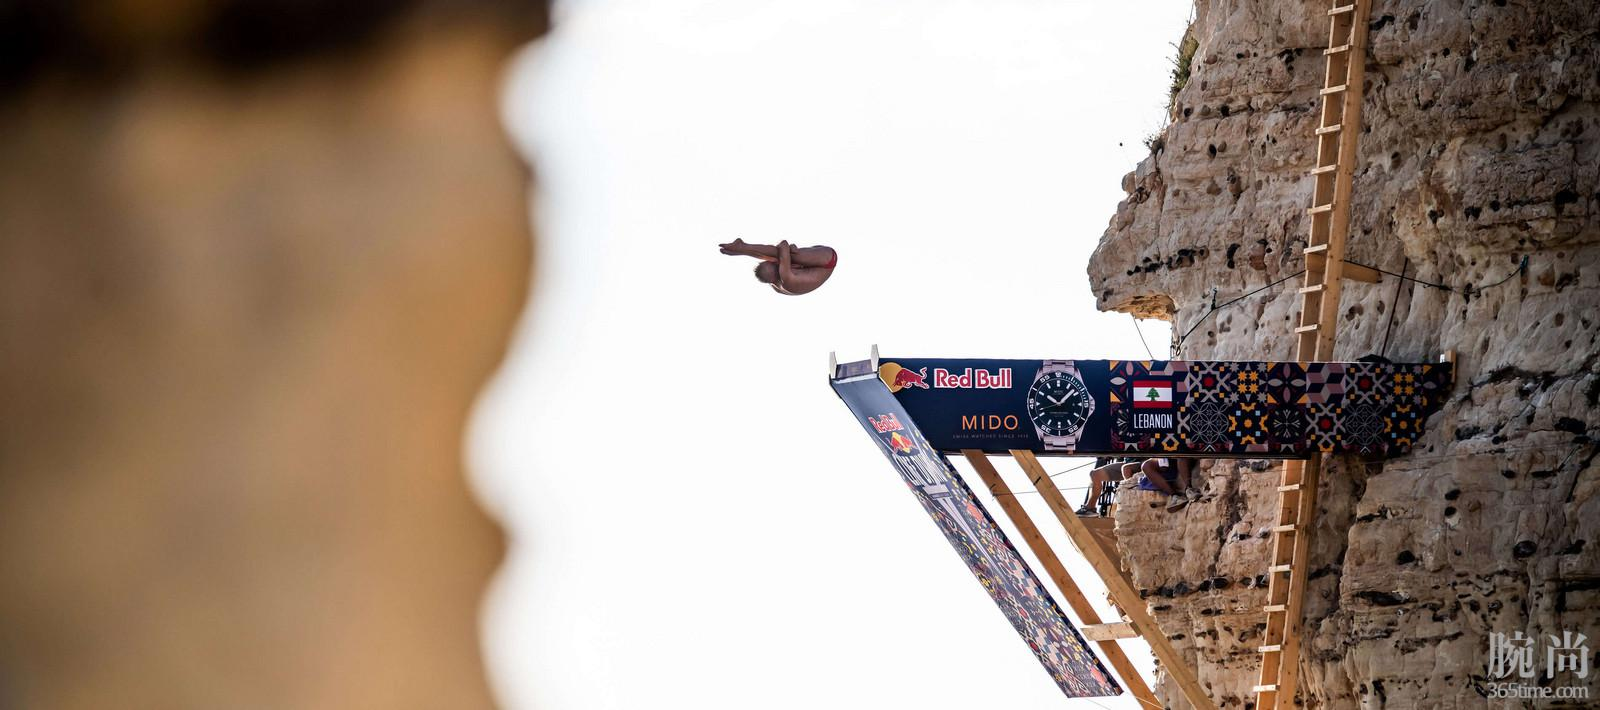 Credit-Romina-Amato-Red-Bull-Content-Pool_Beirut-2019_1.jpg